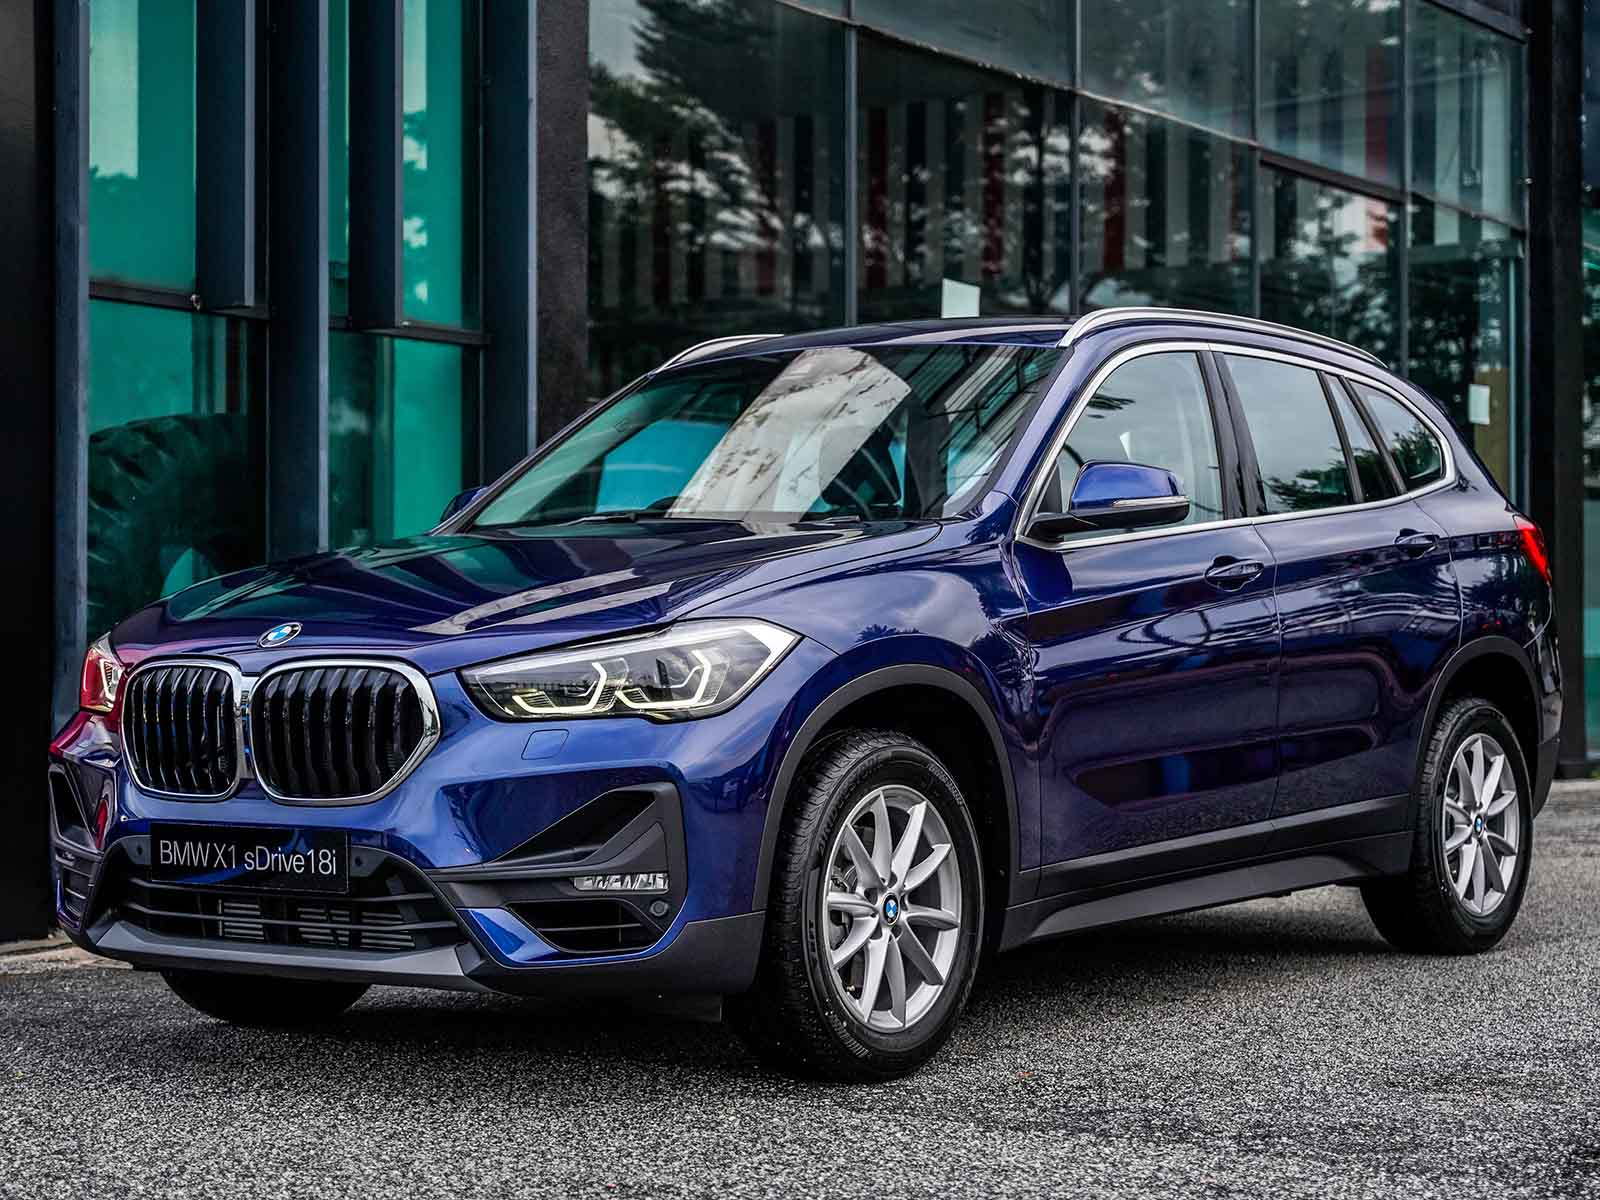 New Bmw X1 2020 2021 Price In Malaysia Specs Images Reviews